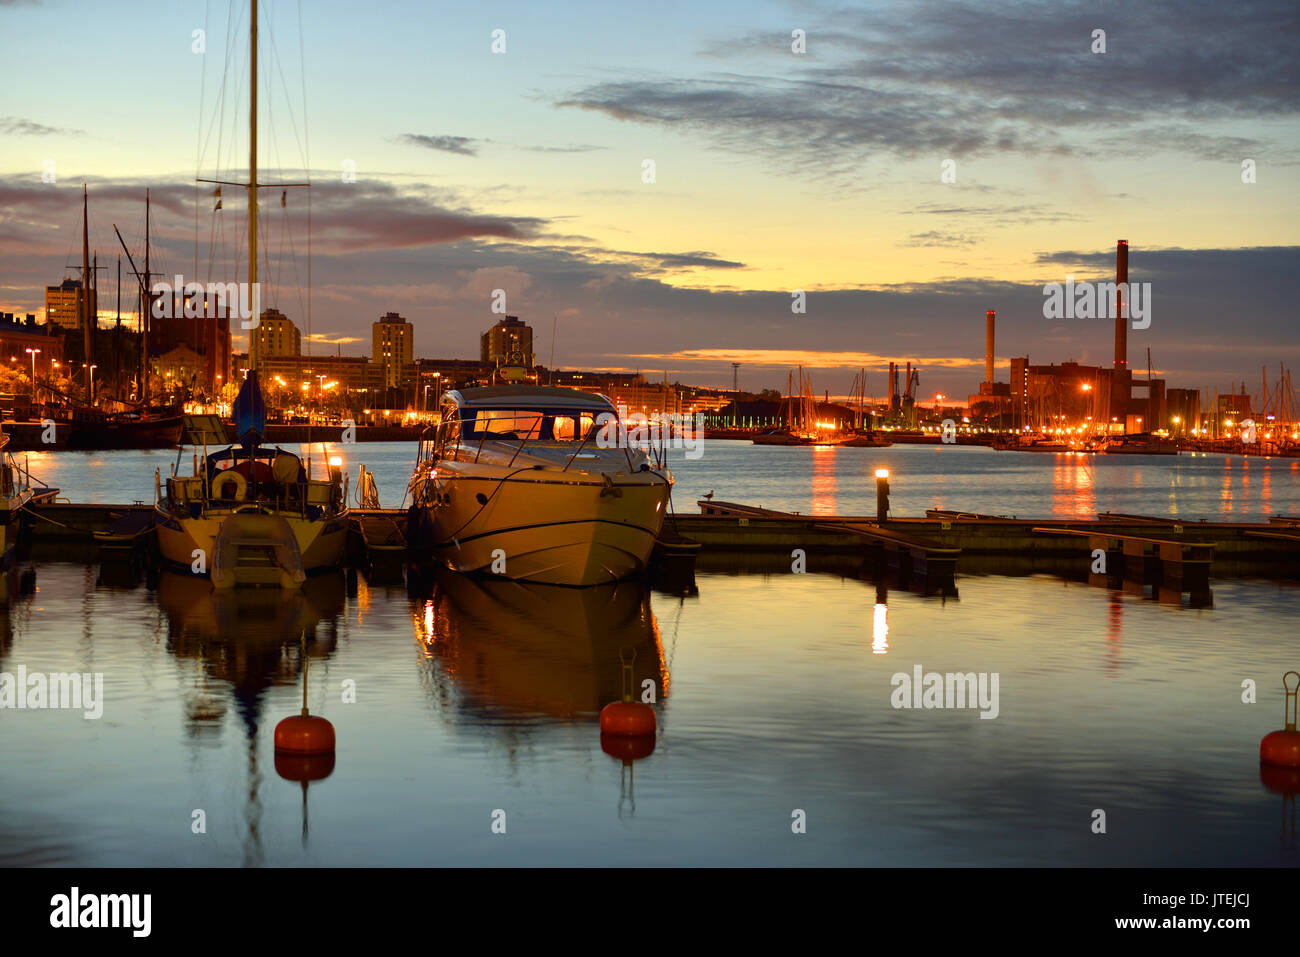 Sunset in Helsinki. Ships and yachts sleep in harbor Stock Photo